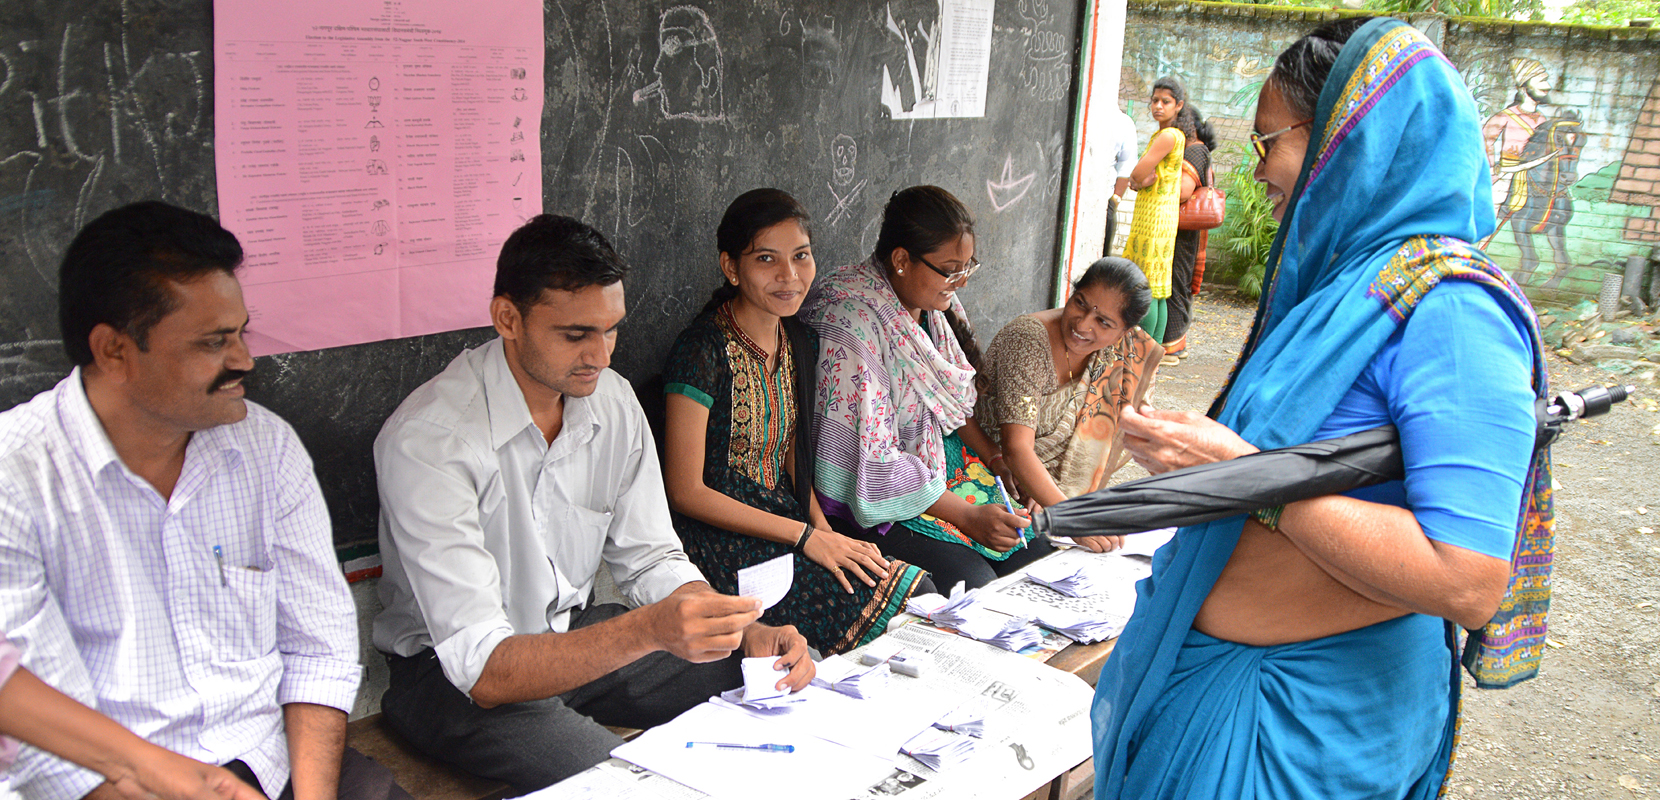 Image: Elections in Nagpur, India